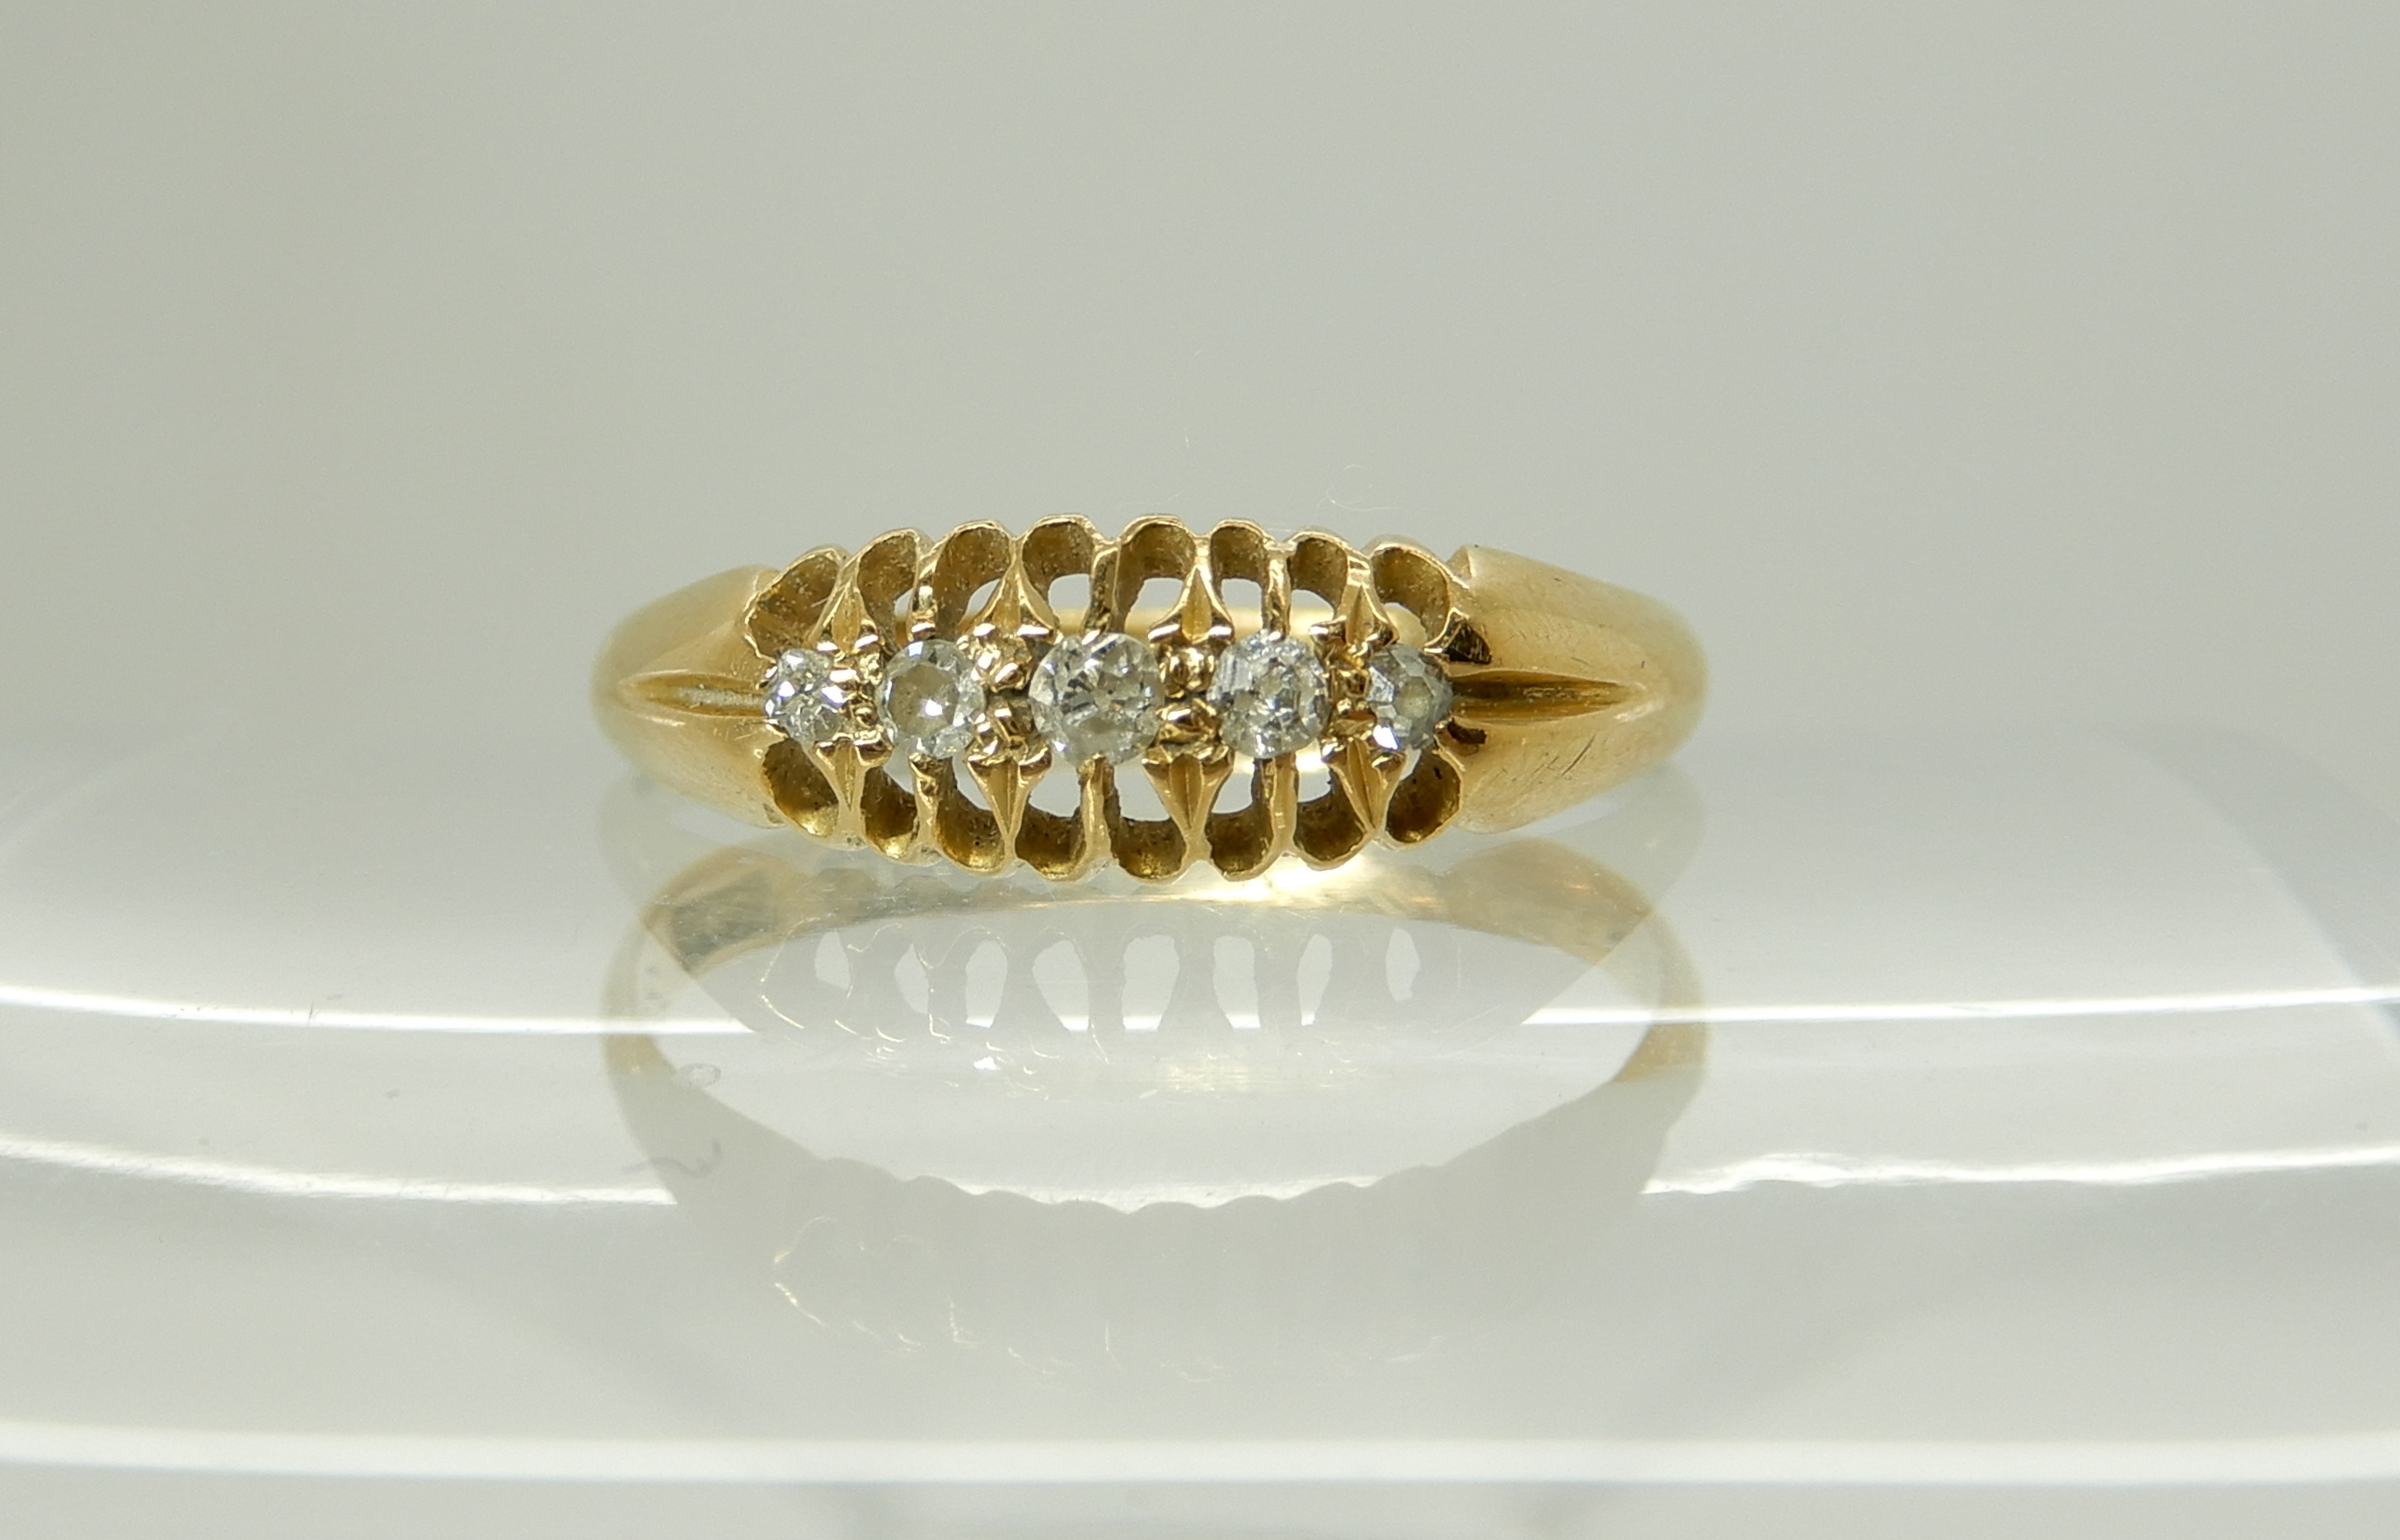 Lot 16 - An 18ct gold five stone diamond ring, size P, weight 2.4gms Condition Report: Available upon